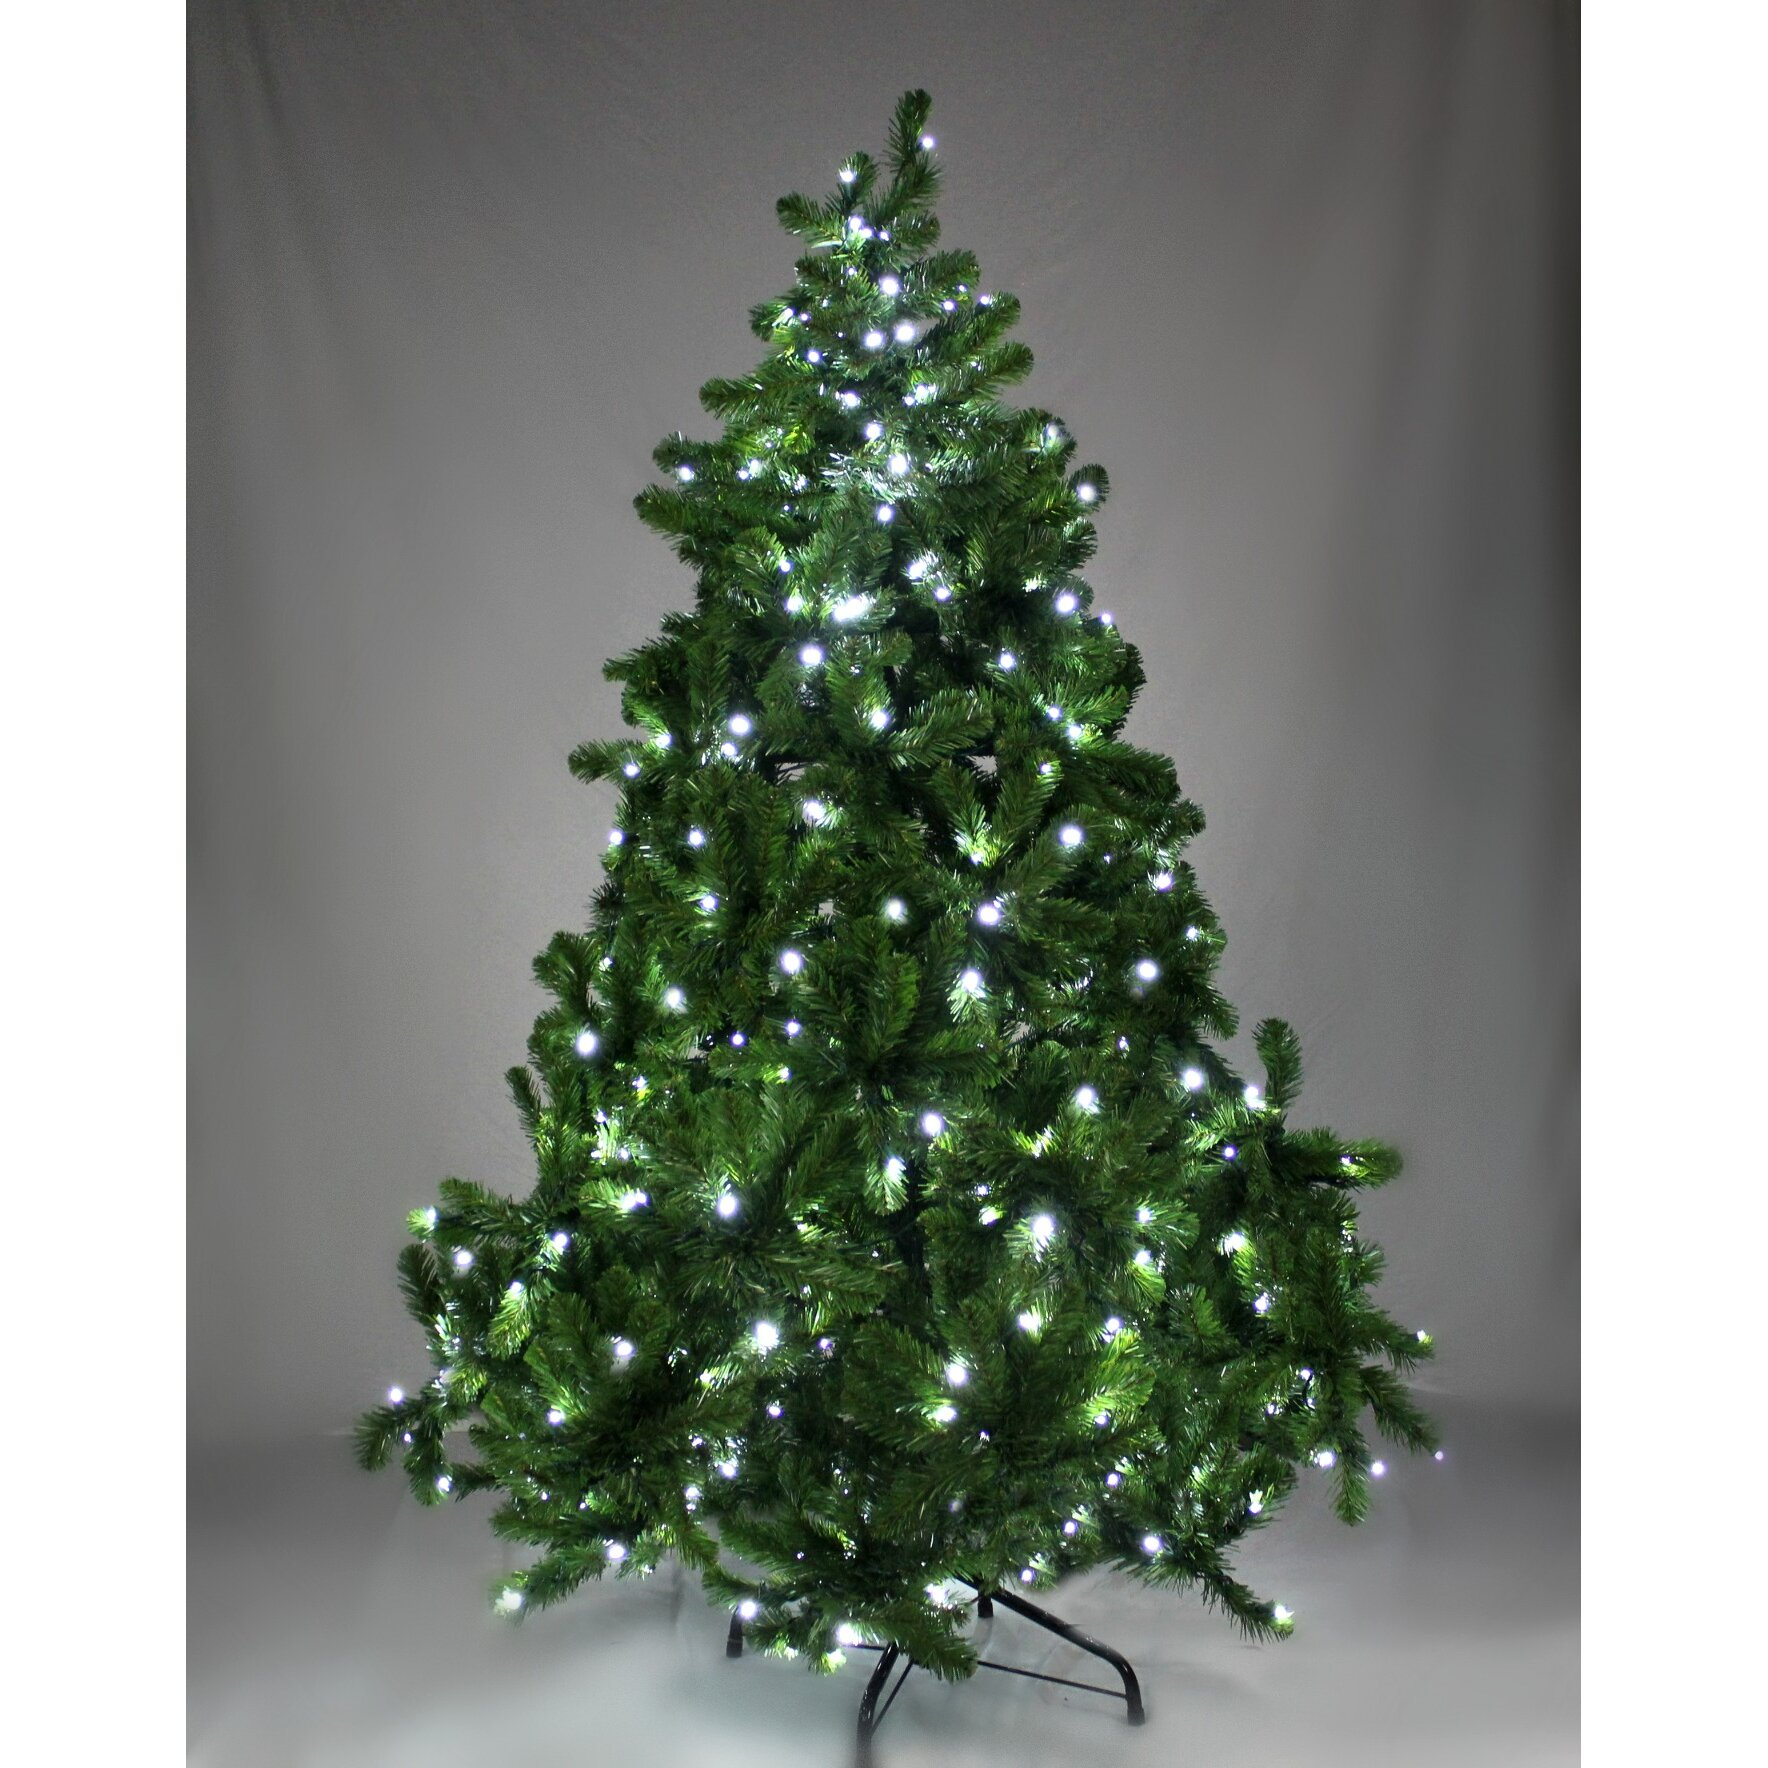 Queens Of Christmas 6' Pre-Lit Sequoia Tree With Pure